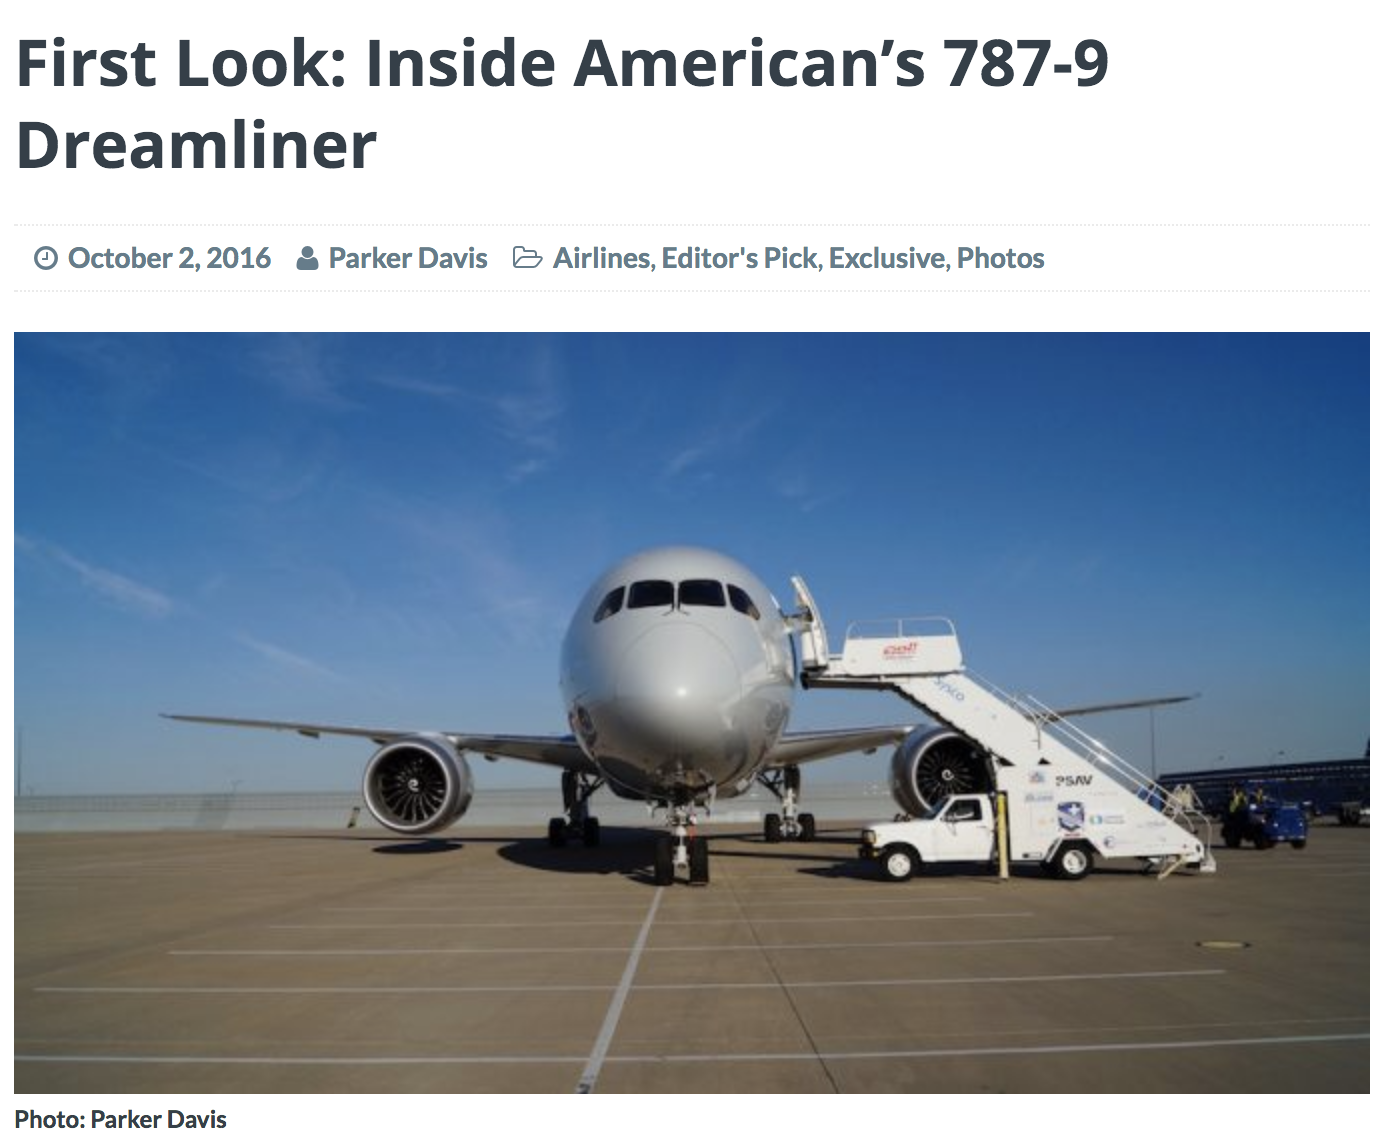 After taking a tour of American's newest aircraft, I drafted an article telling and showing readers what to expect.